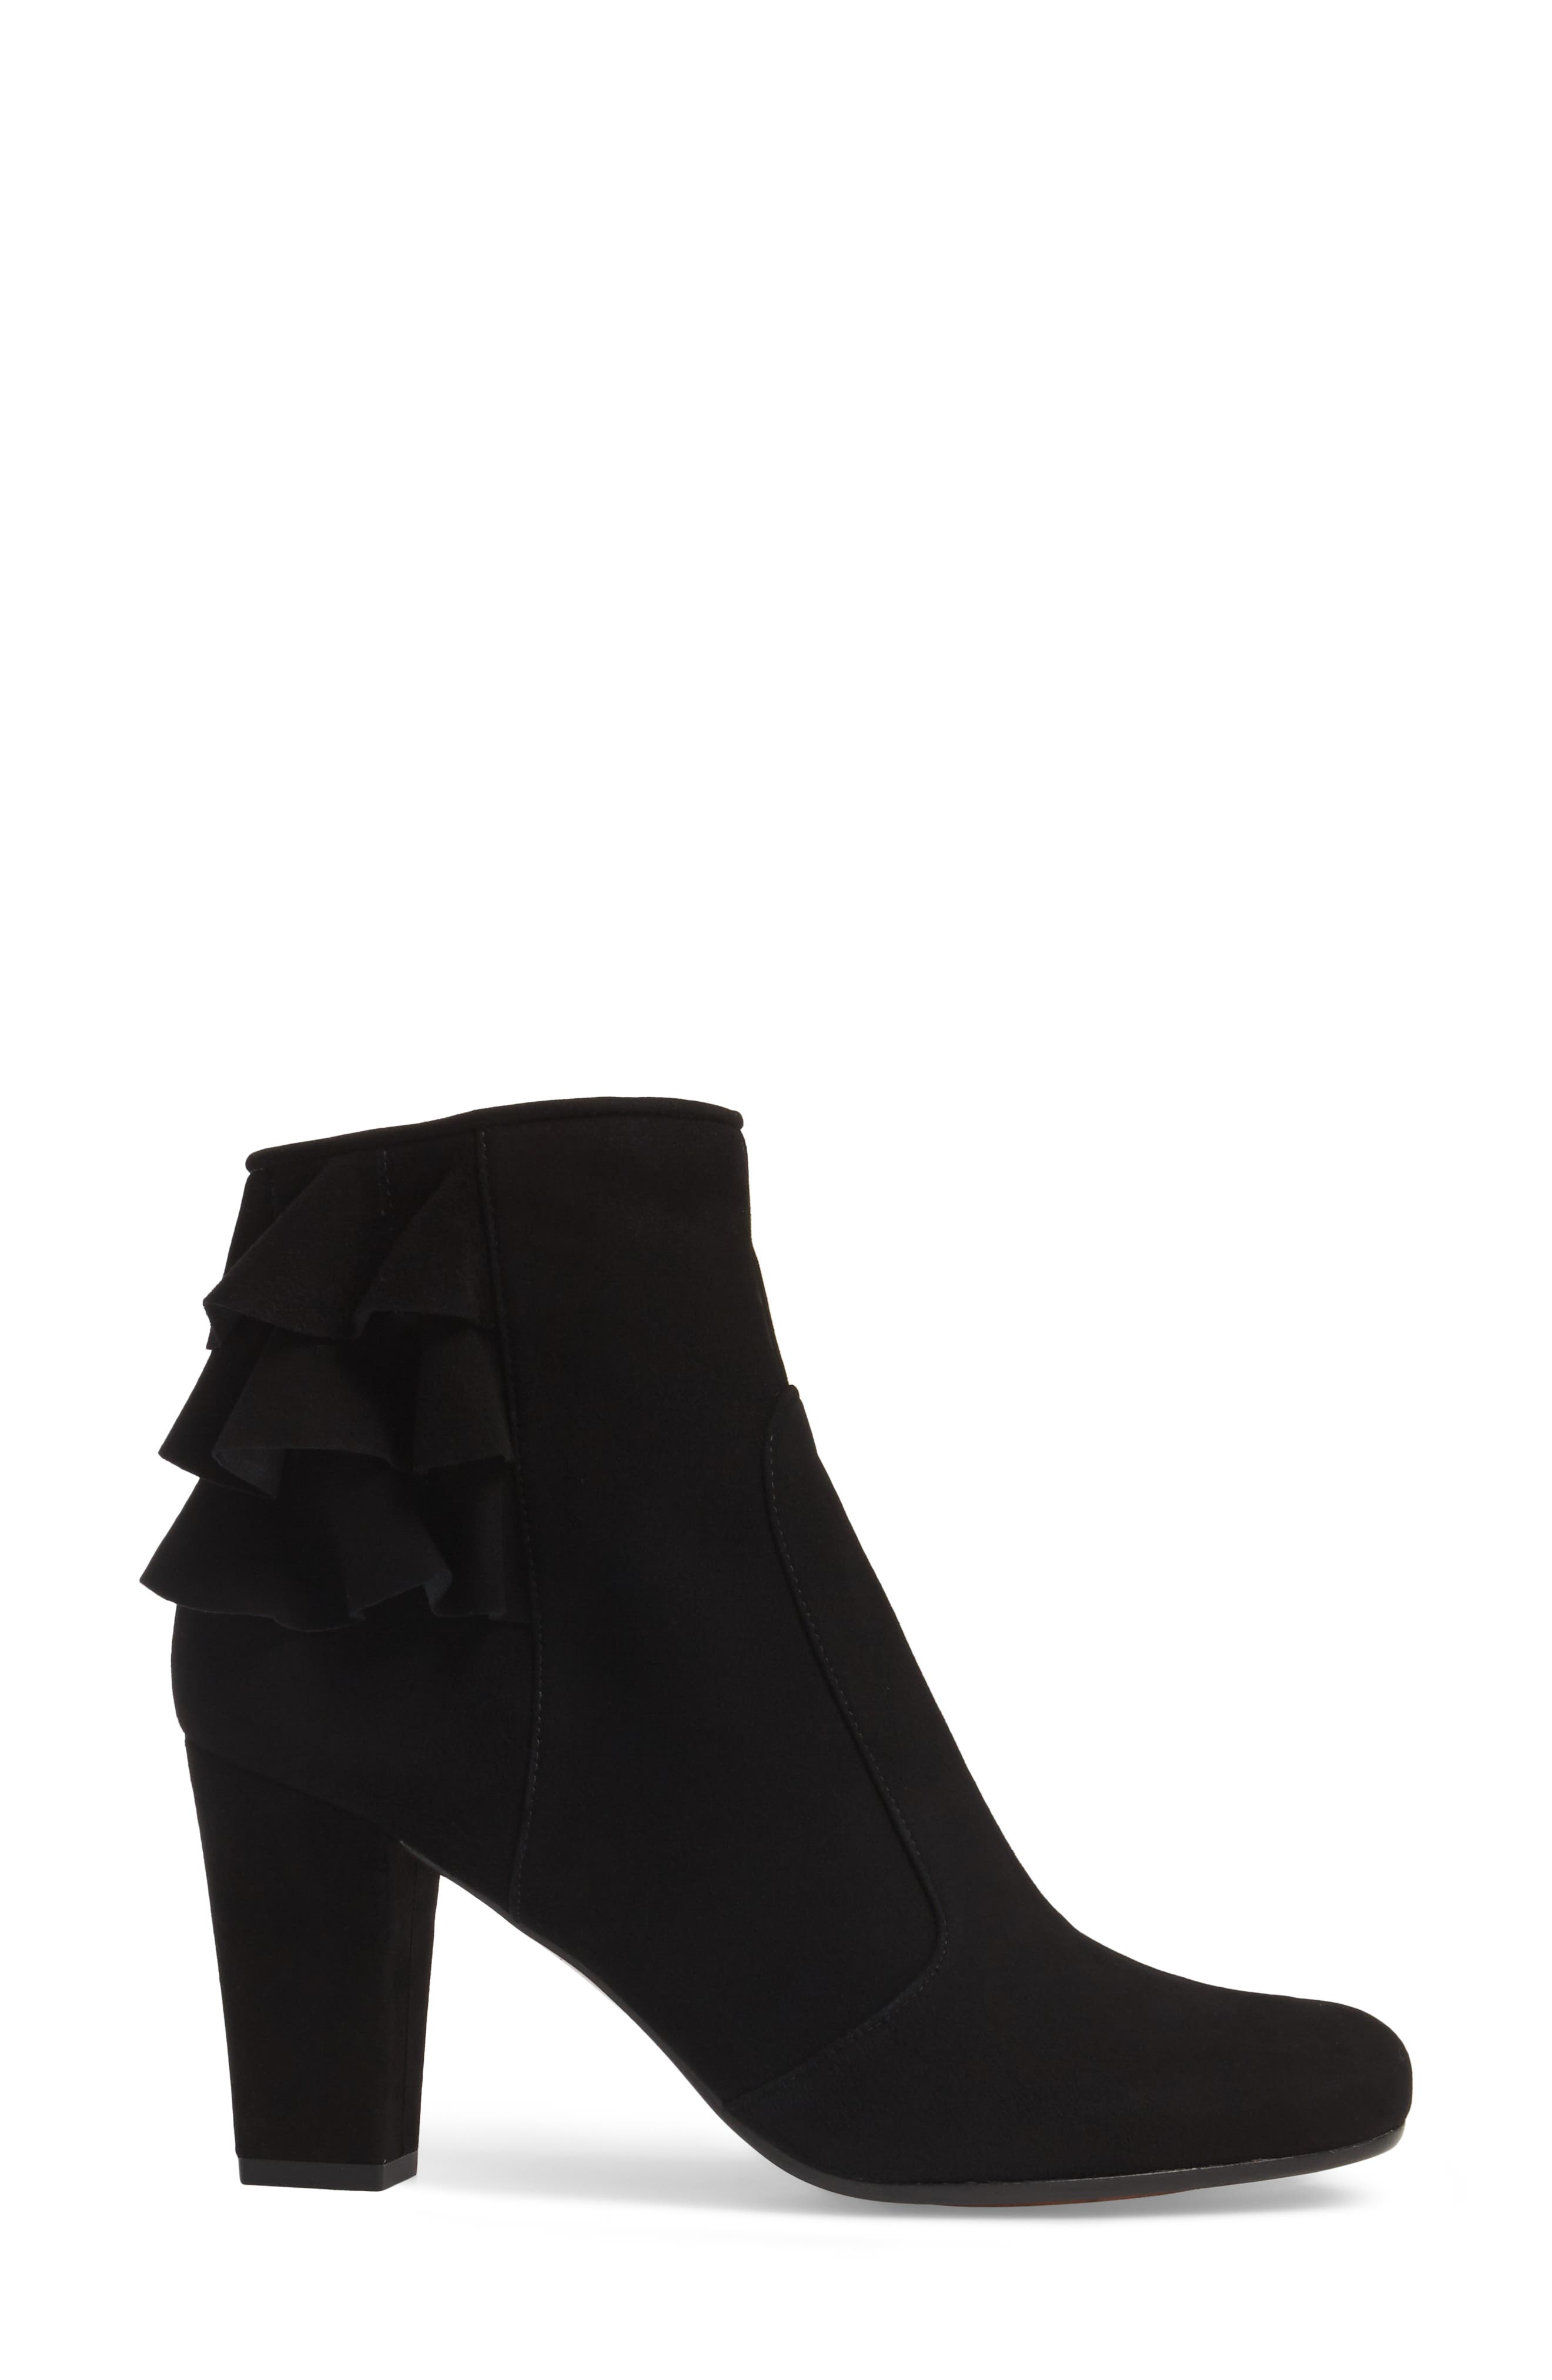 Acha Ruffle Bootie,                             Alternate thumbnail 3, color,                             001